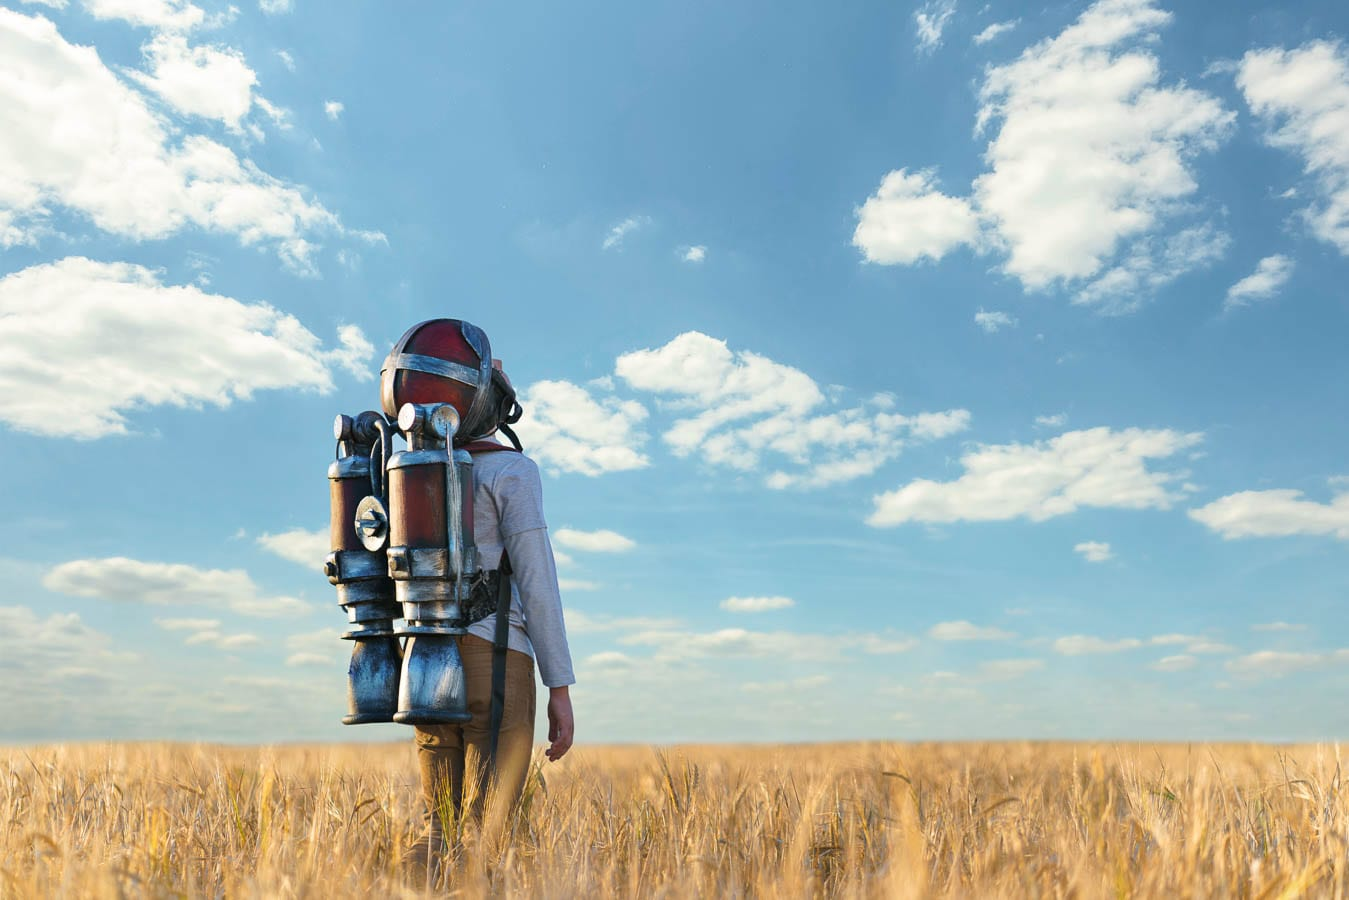 boy standing in wheat field wearing a jetpack